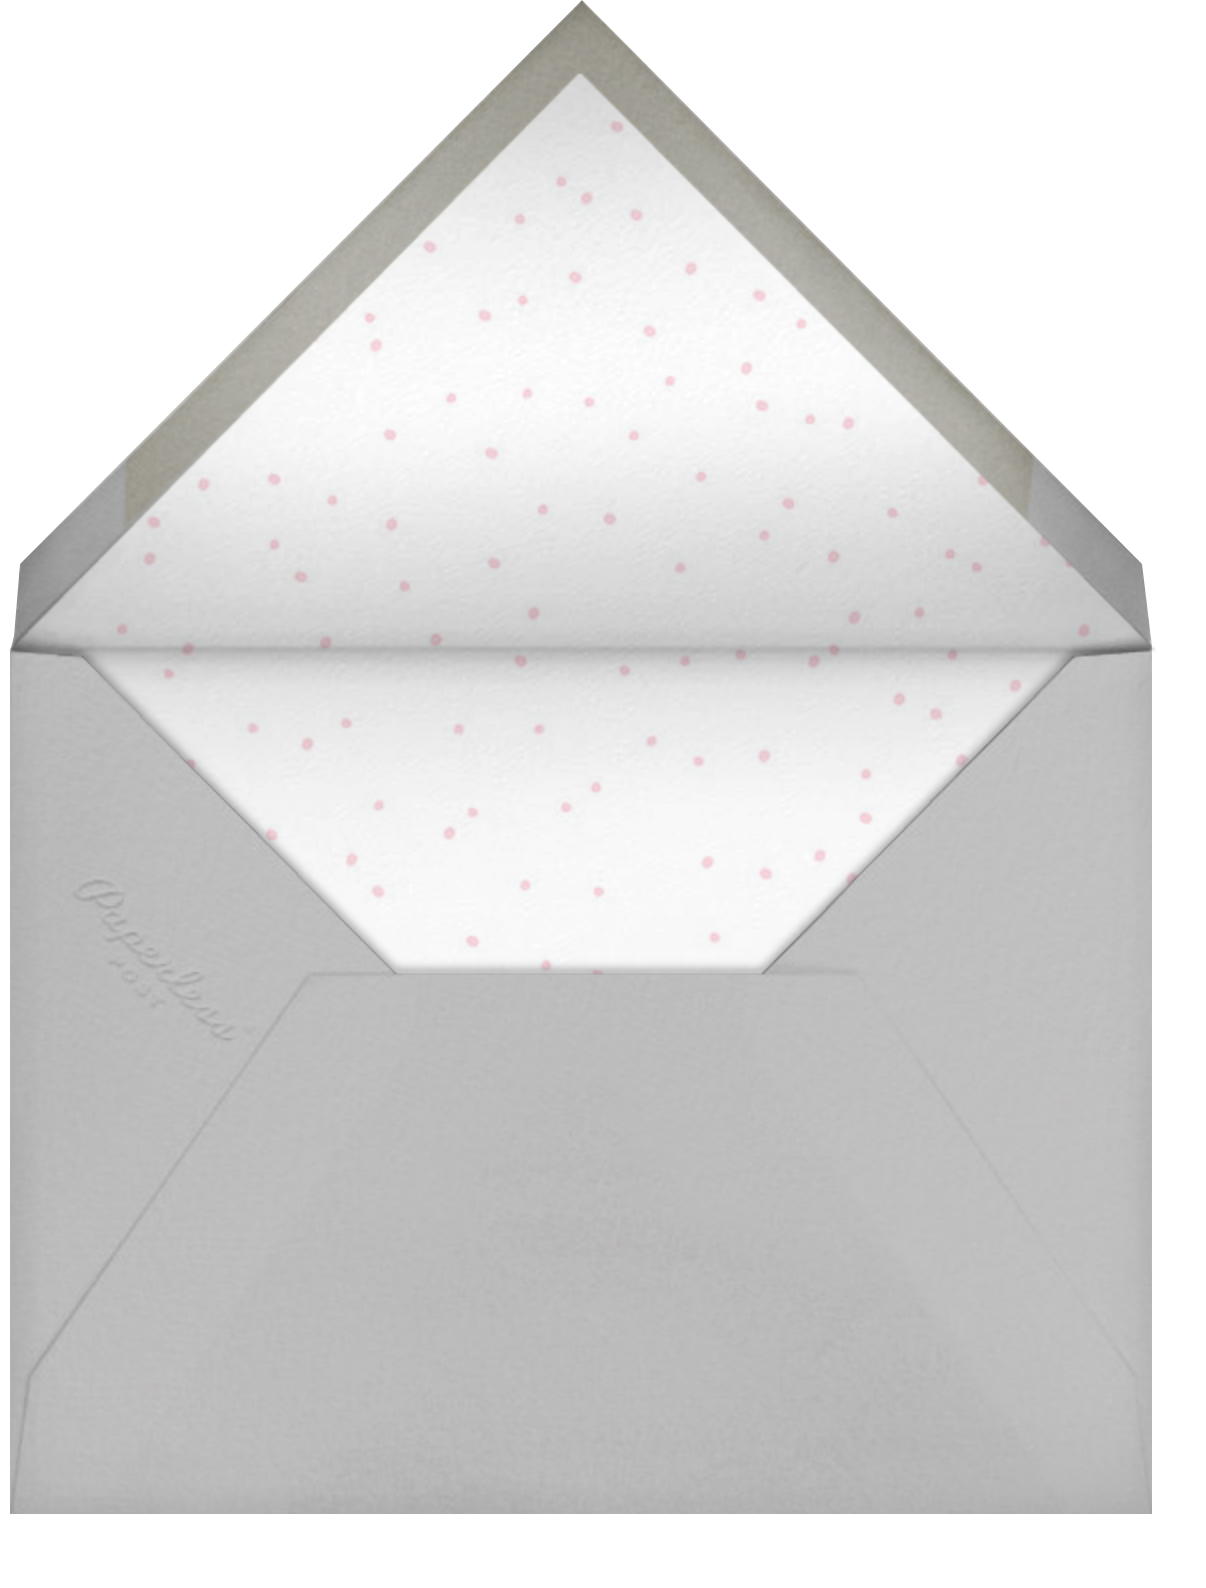 Baby Bunny - Little Cube - First birthday - envelope back